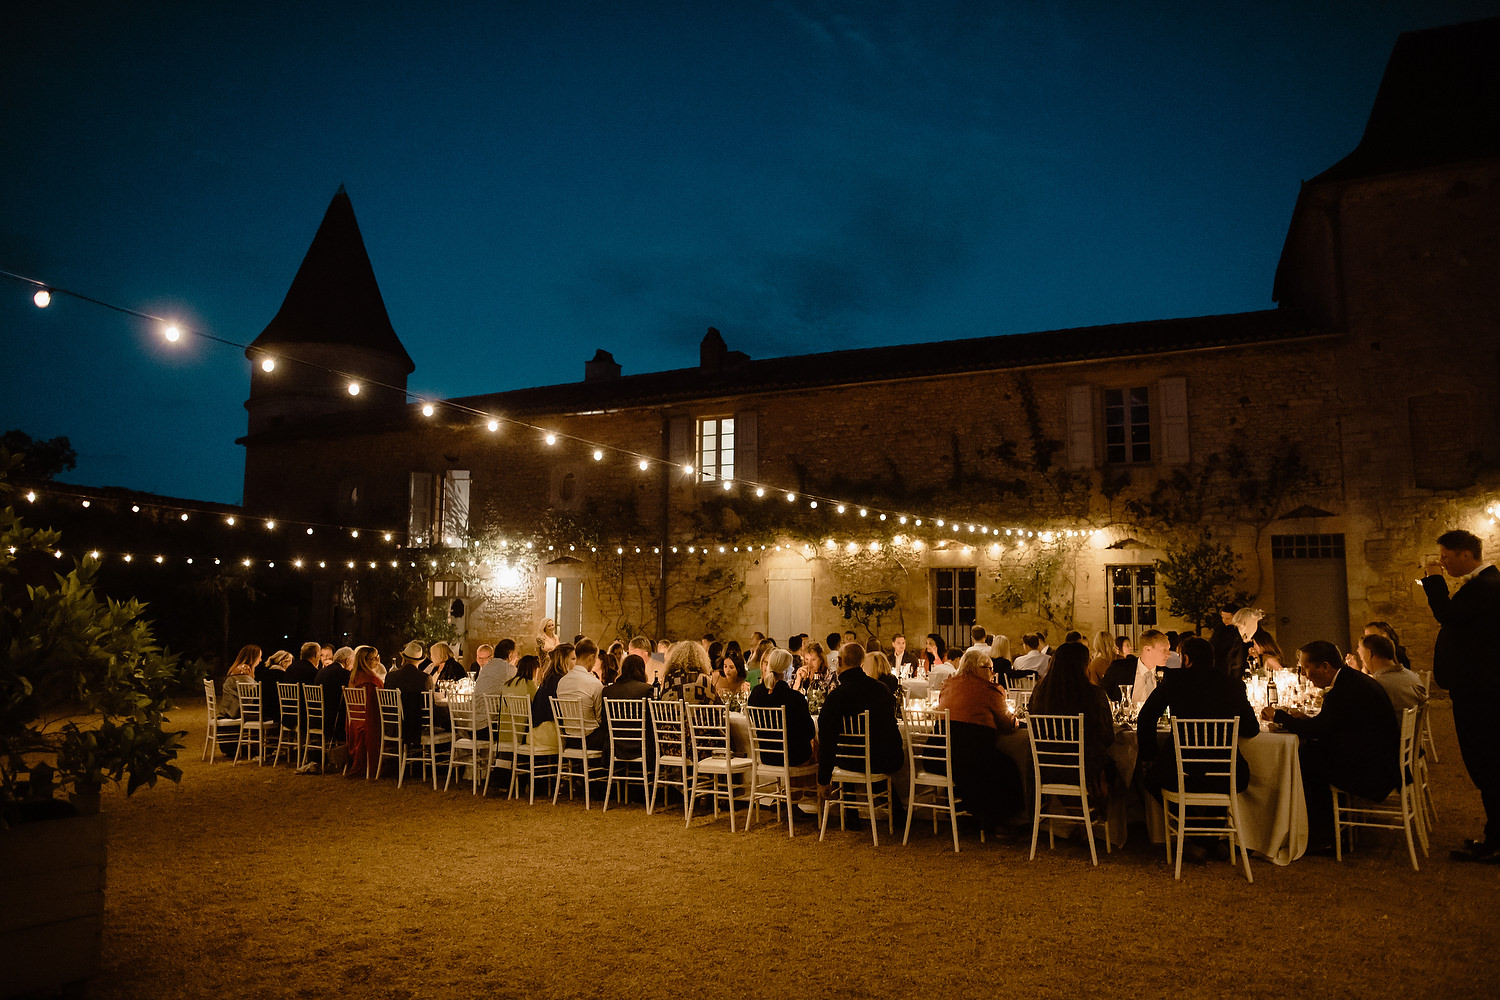 Chateau d'Urval courtyard at night